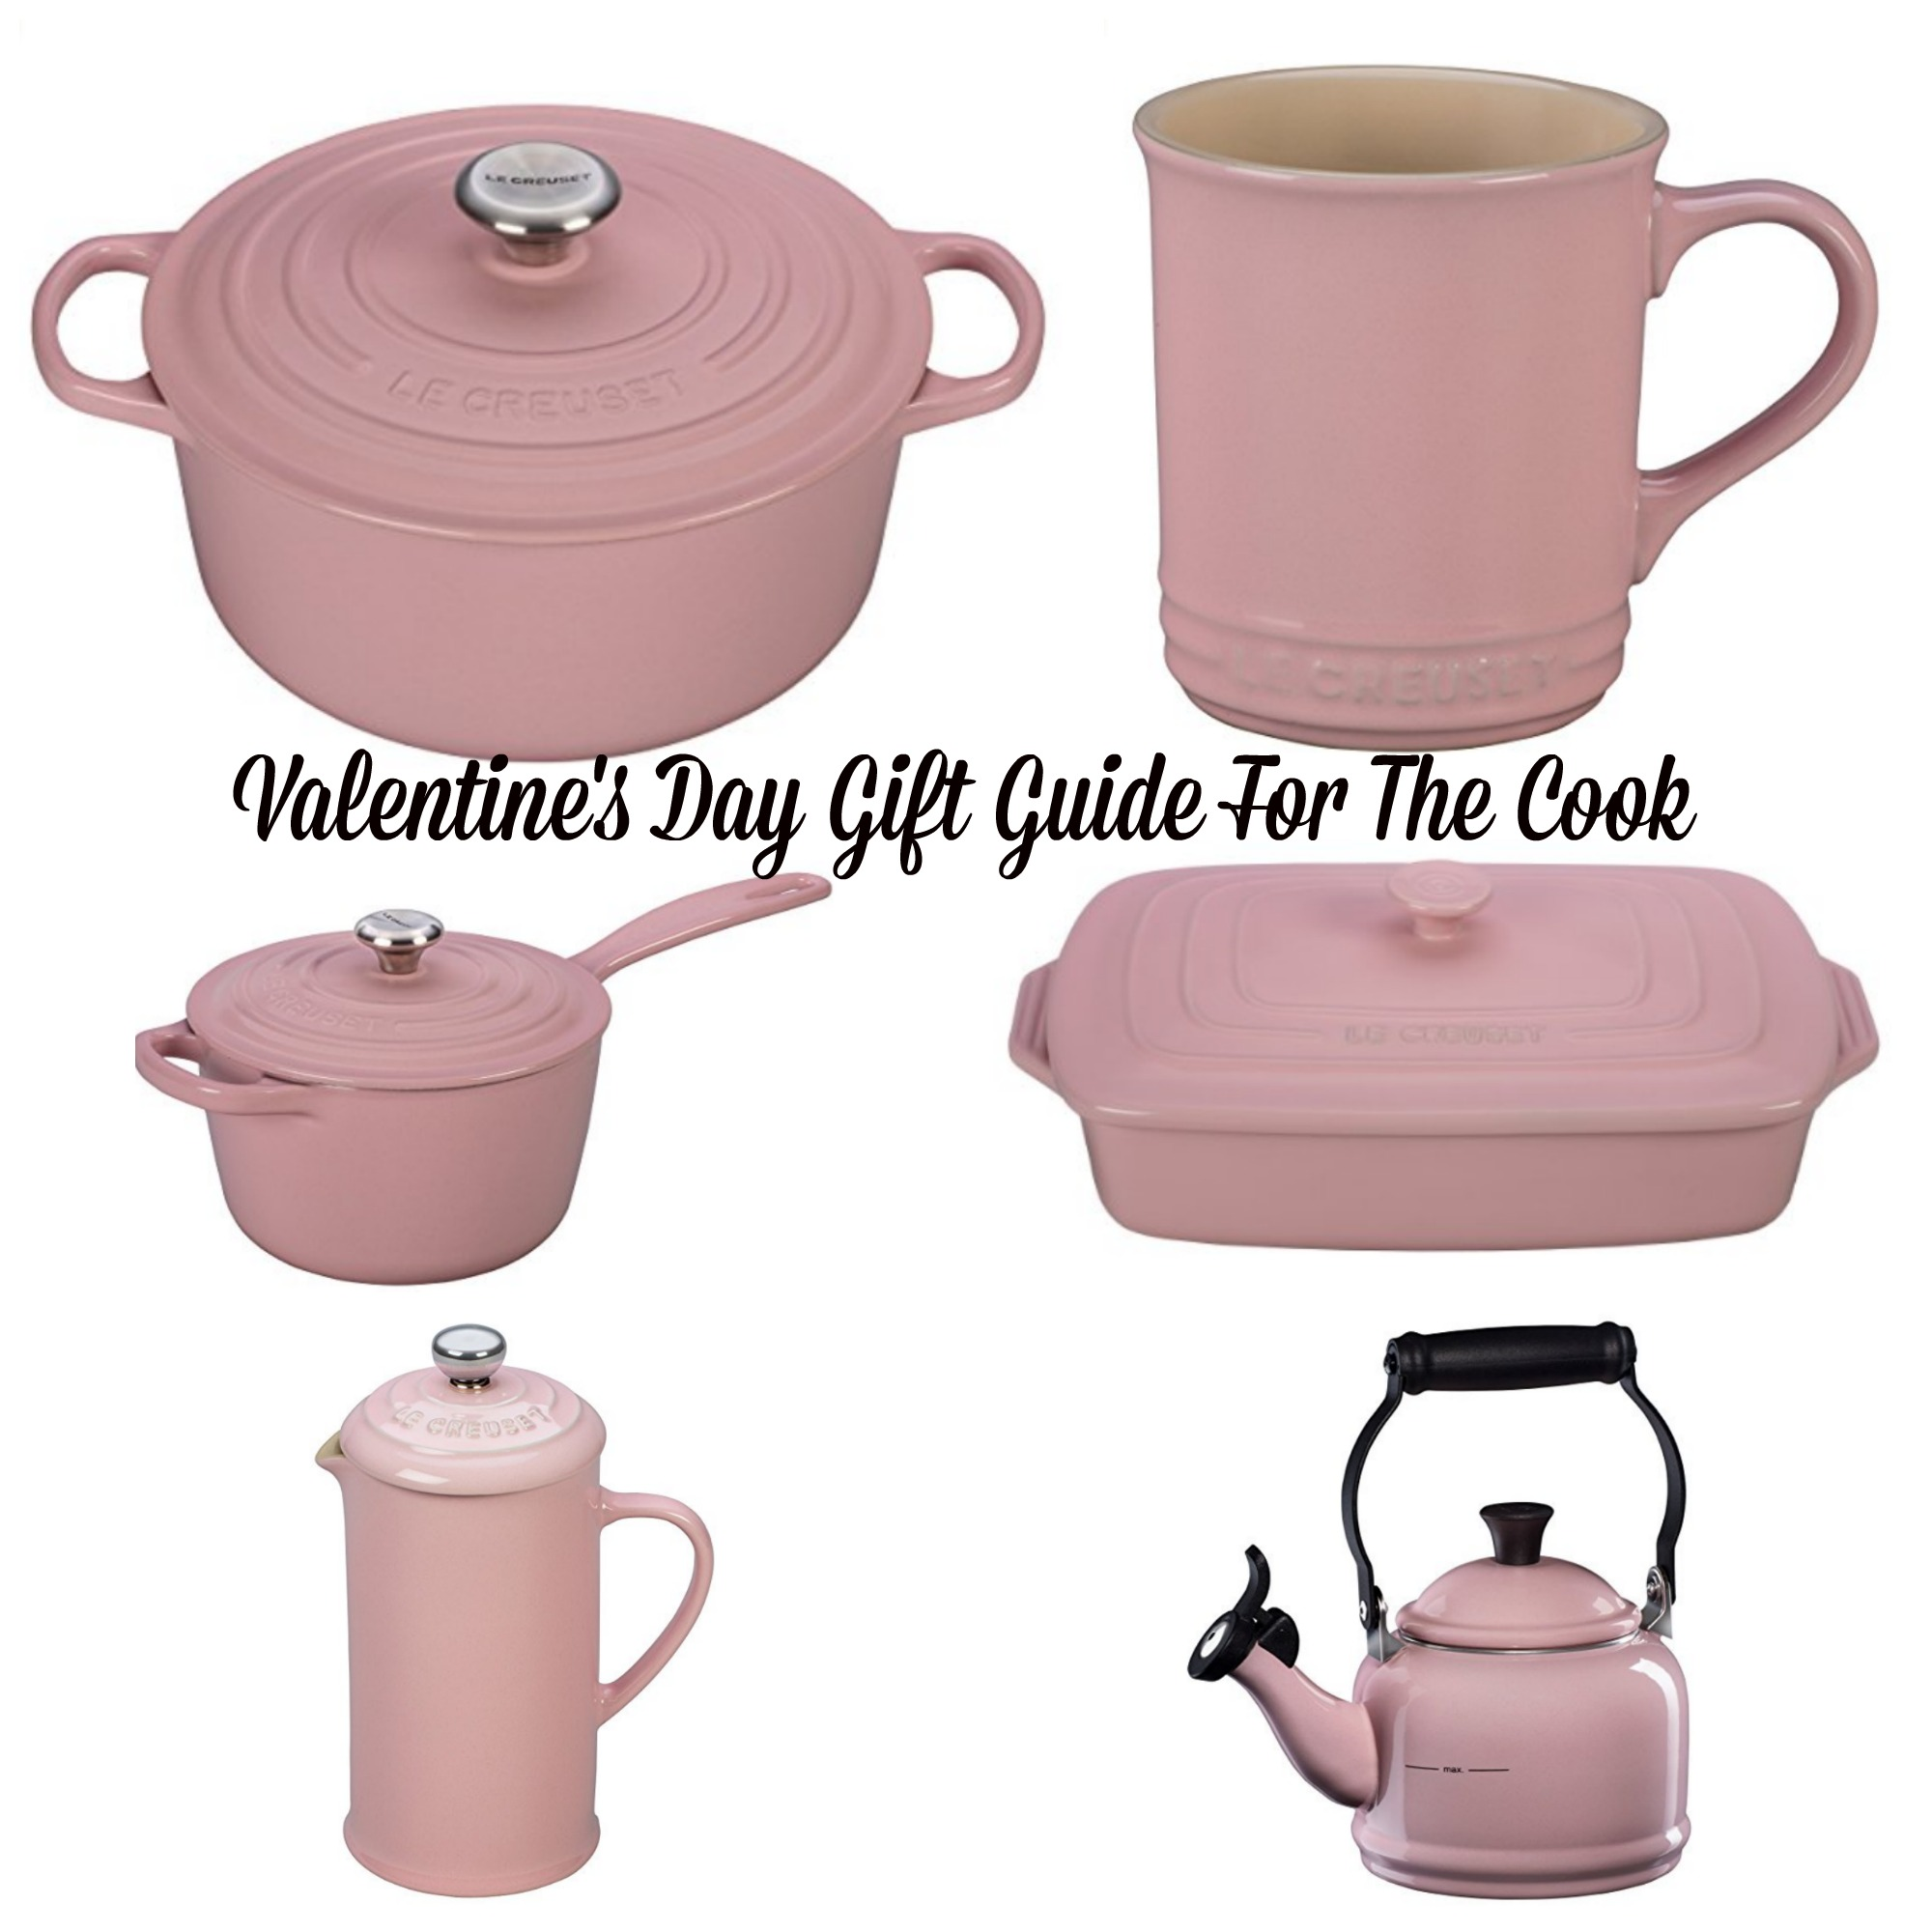 Valentine's Day Gift Guide For The Cook